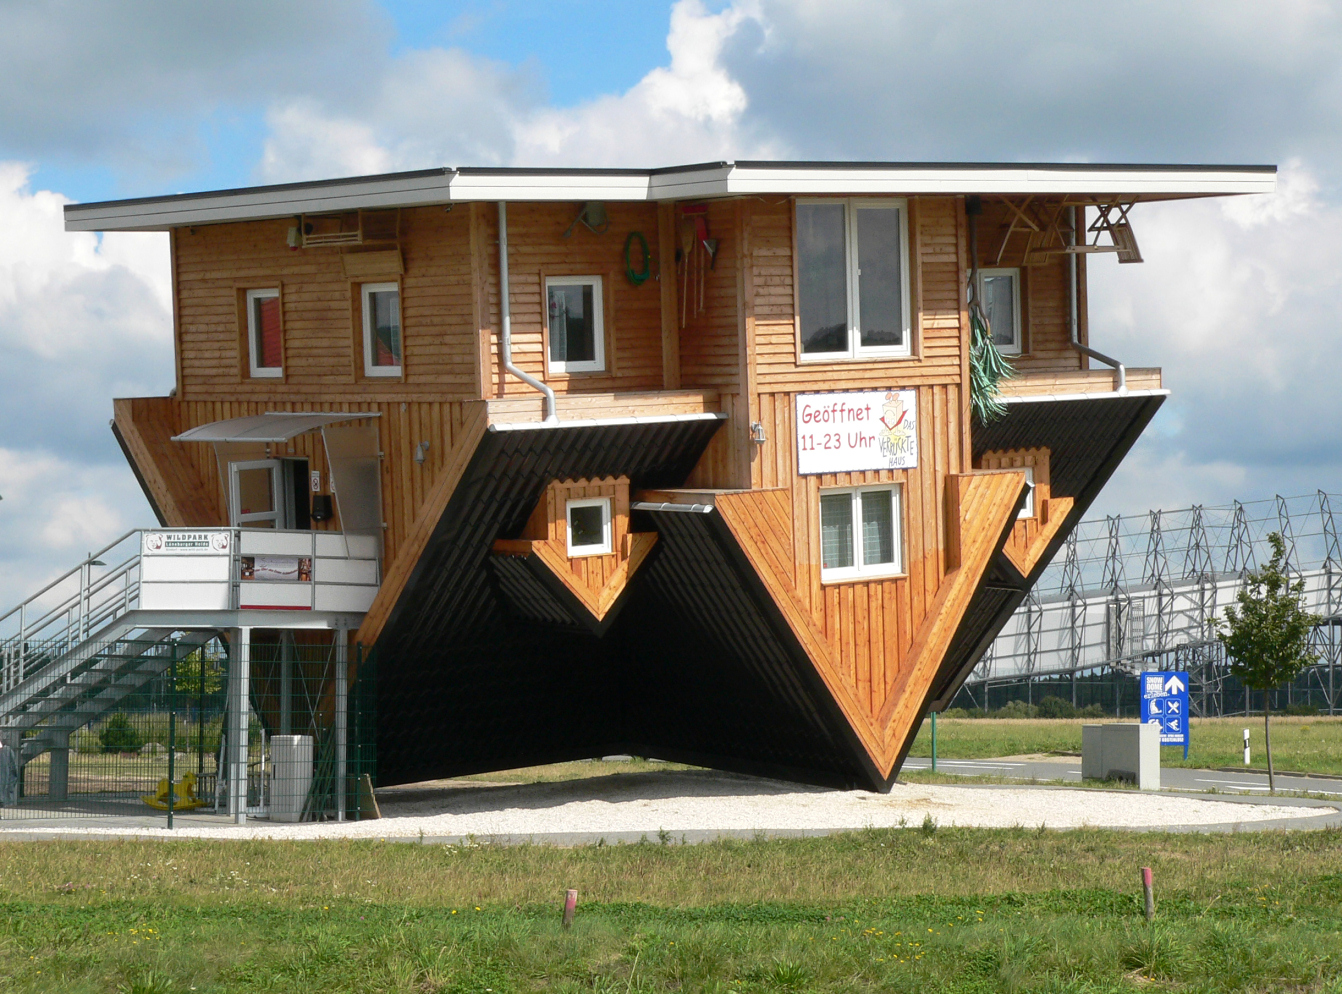 The amazing house in germany that is upside down - Home construction designs ...